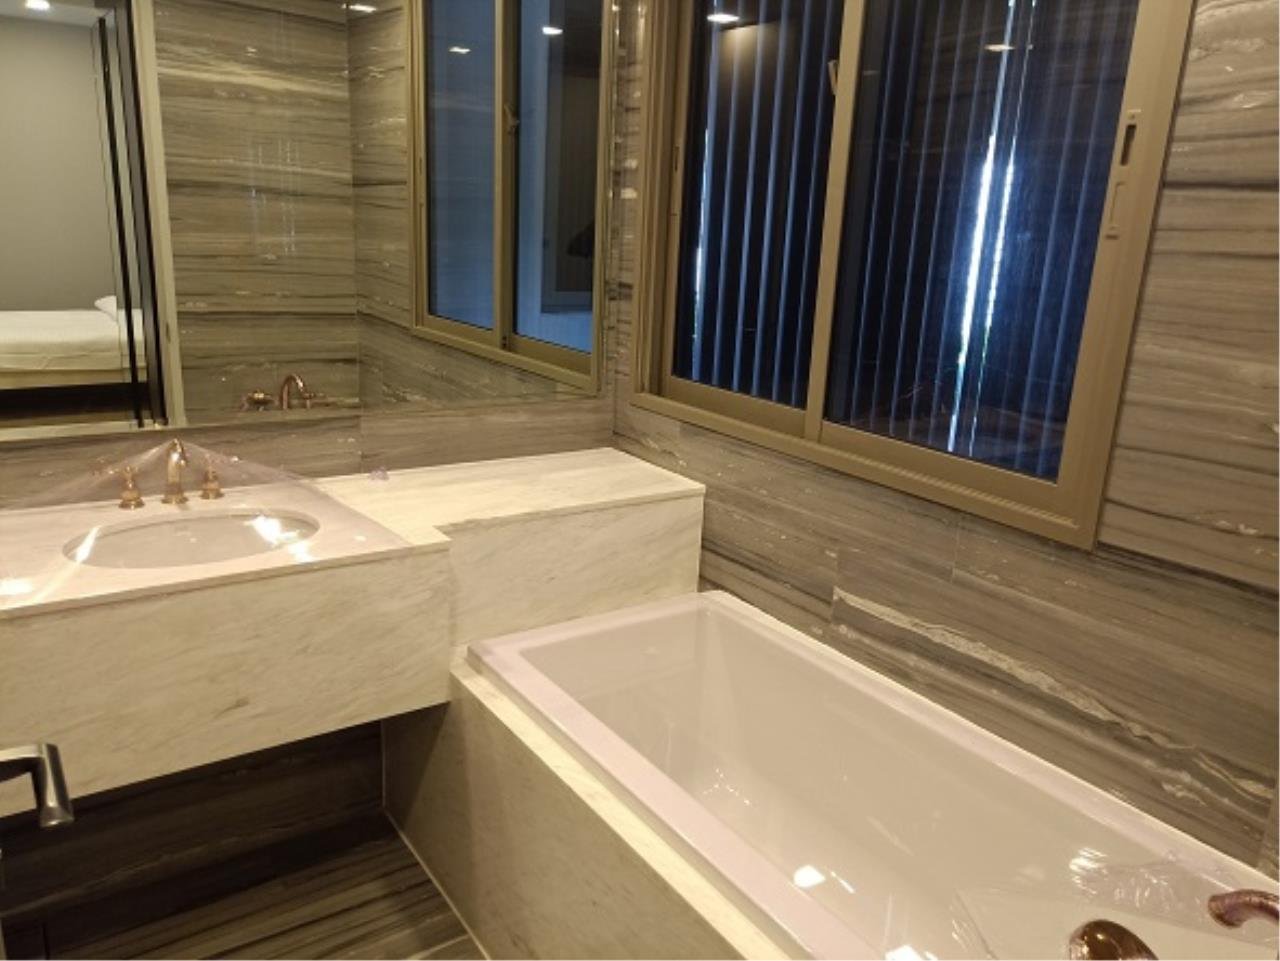 RE/MAX All Star Realty Agency's Ashton Residence 41 High Luxury Condo for sale/rent (BTS Phrom Pong) 4